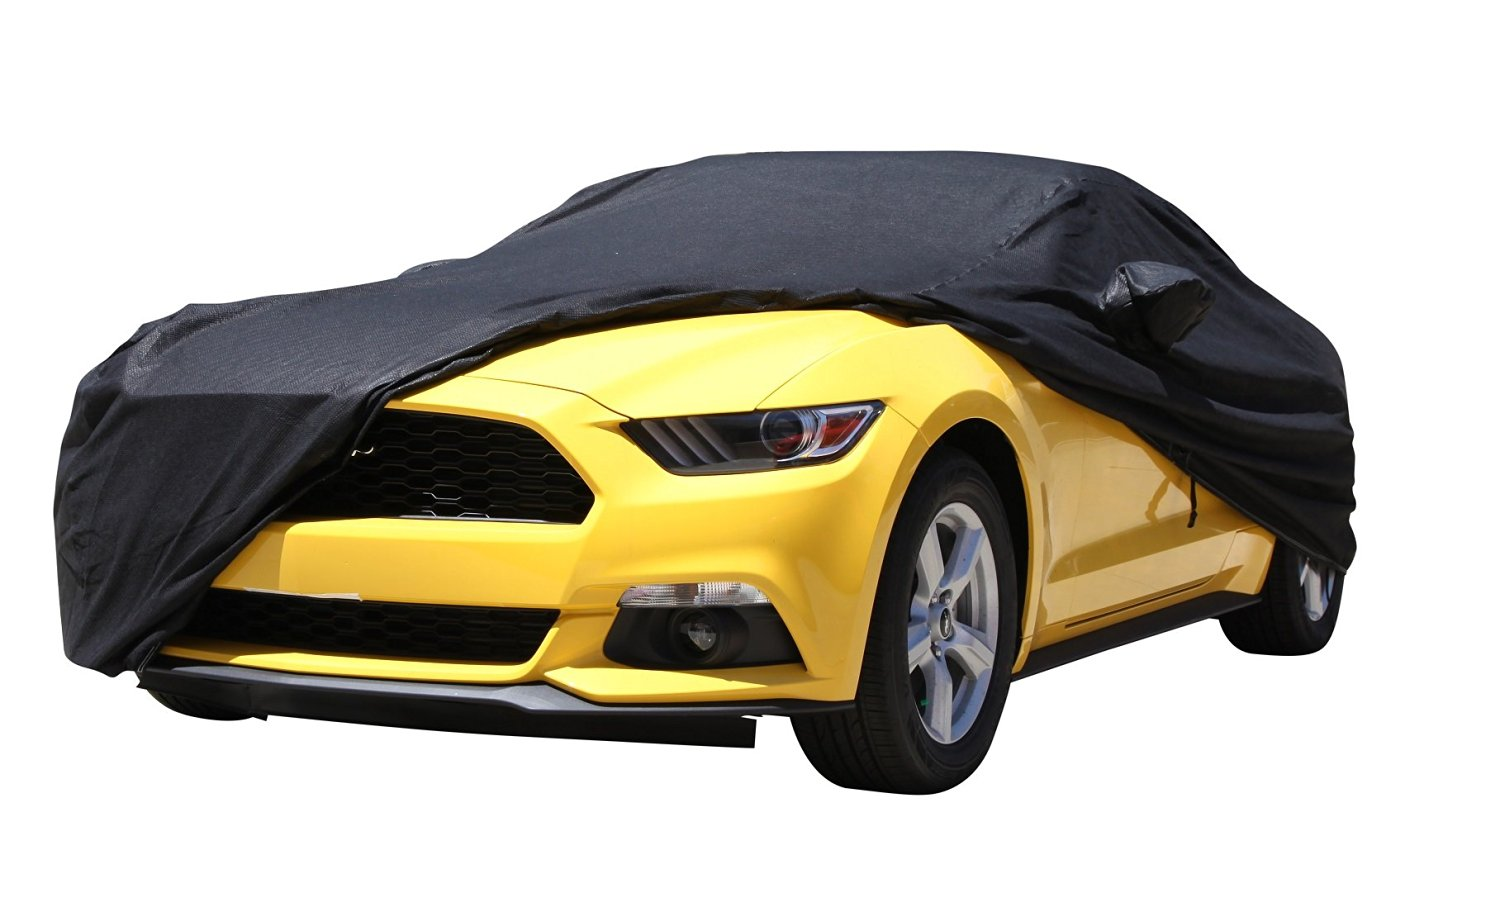 XtremeCoverPro Gold Series Waterproof 100% Breathable Car Cover for Selected Infiniti Q50 Q50S Hybrid Sedan 2014